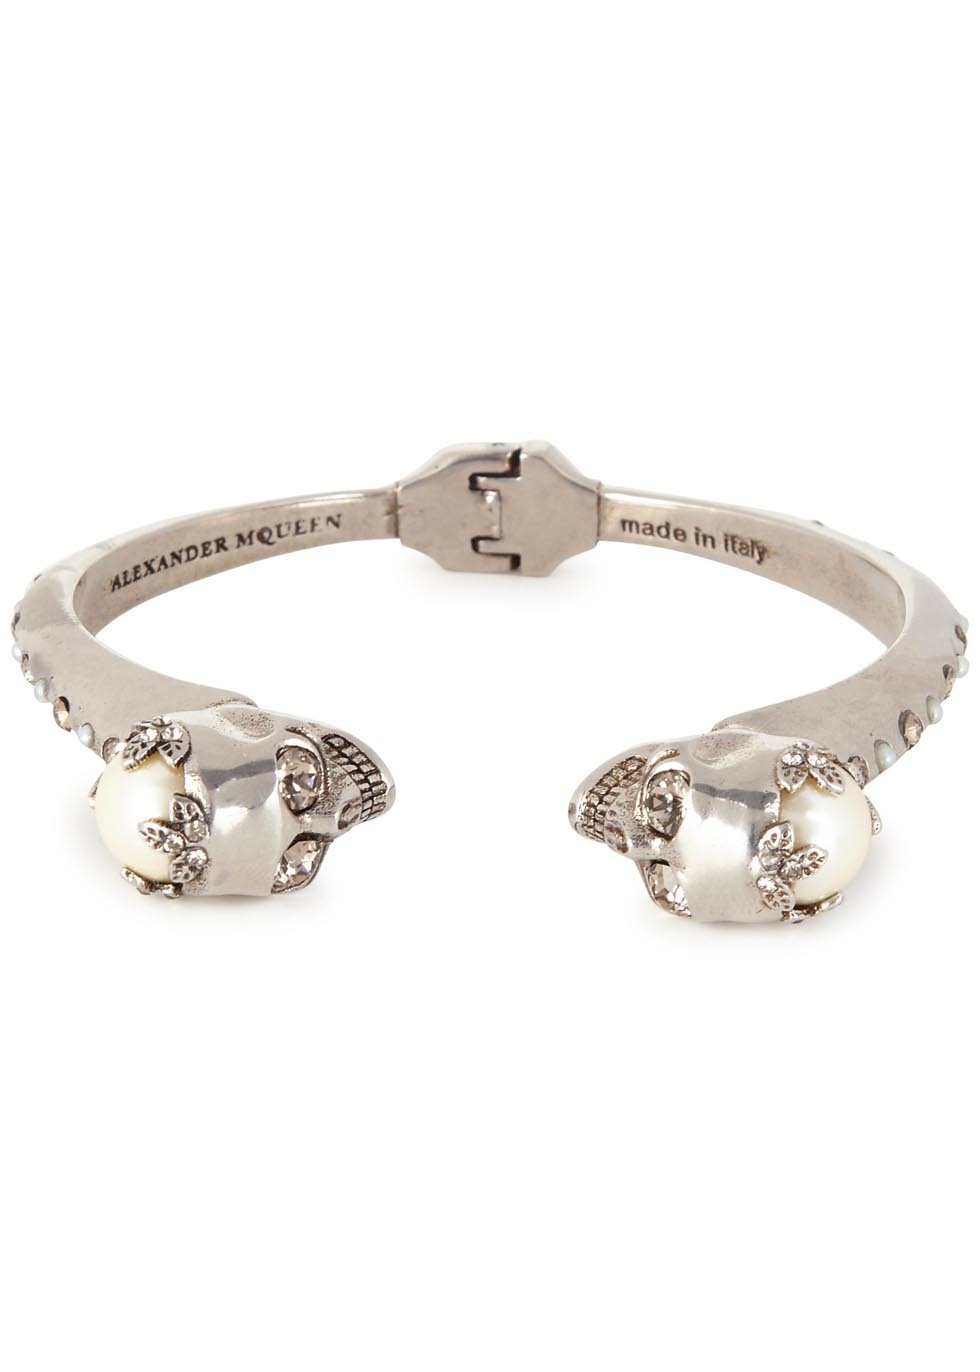 Twin Skull Embellished Silver Bracelet - predominant colour: silver; occasions: evening, occasion; style: cuff; size: standard; material: chain/metal; finish: plain; embellishment: pearls; season: s/s 2016; wardrobe: event